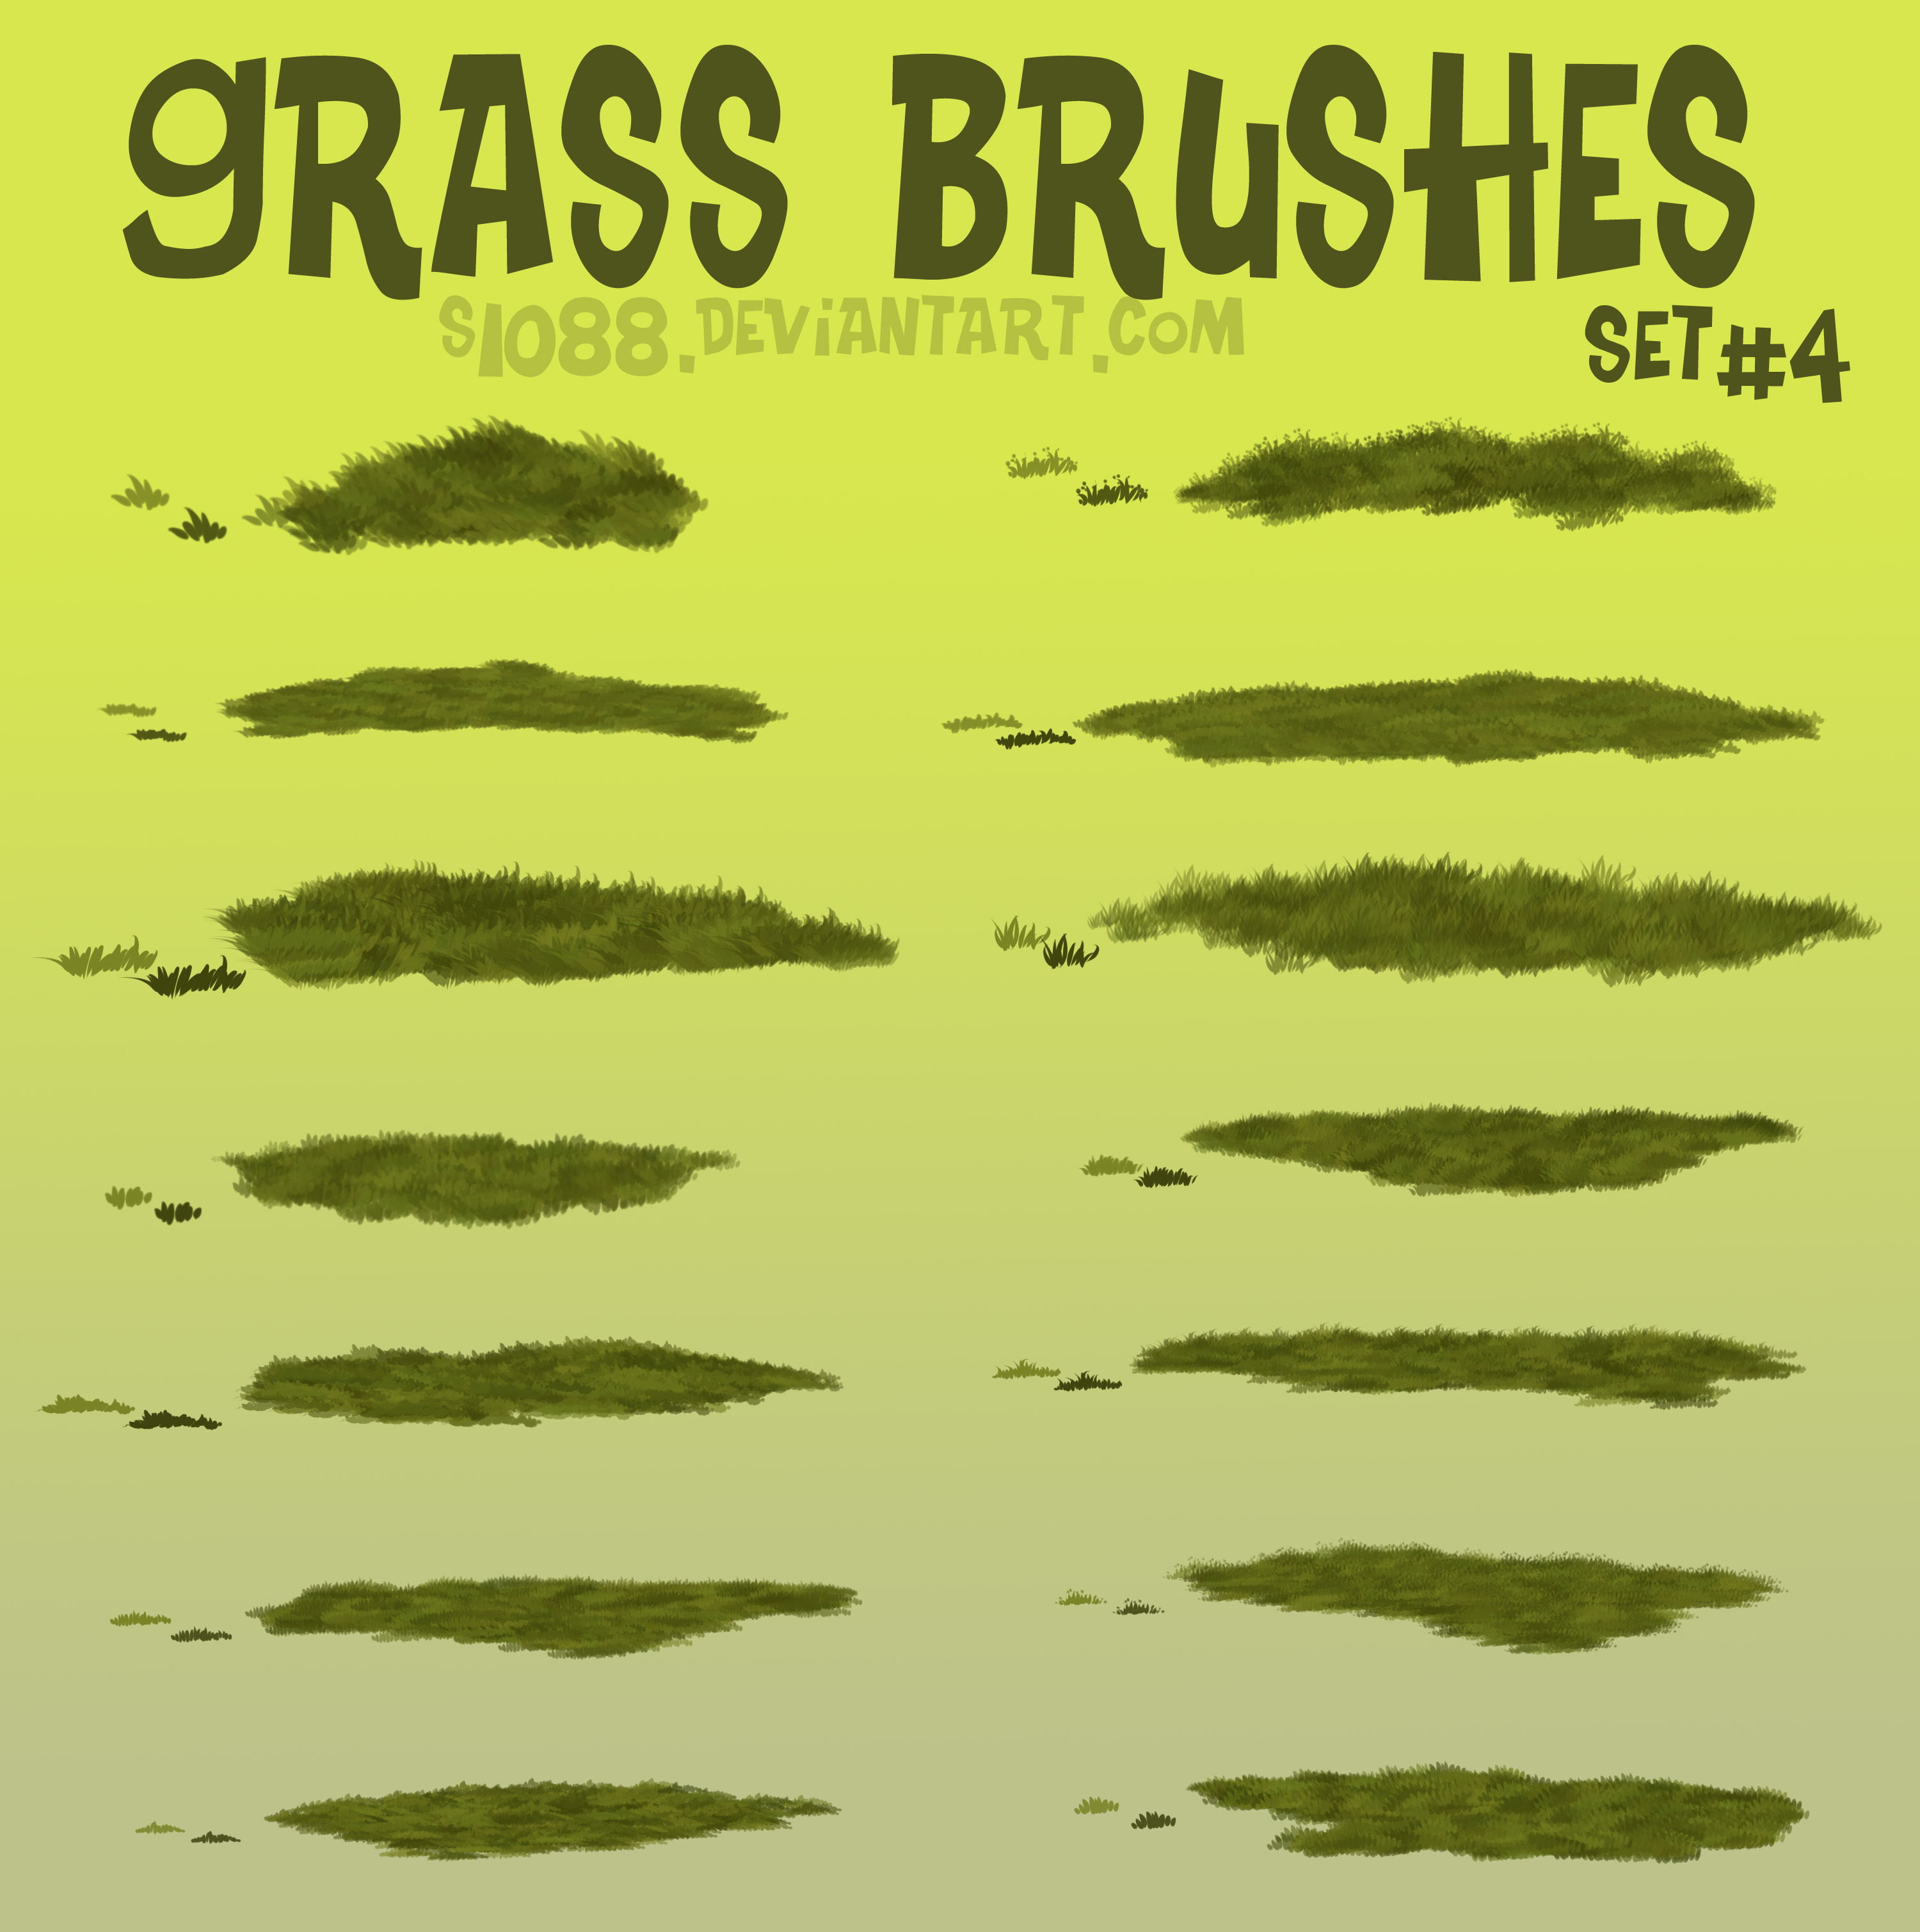 Pay to Use: Grass Brushes #4 by s1088